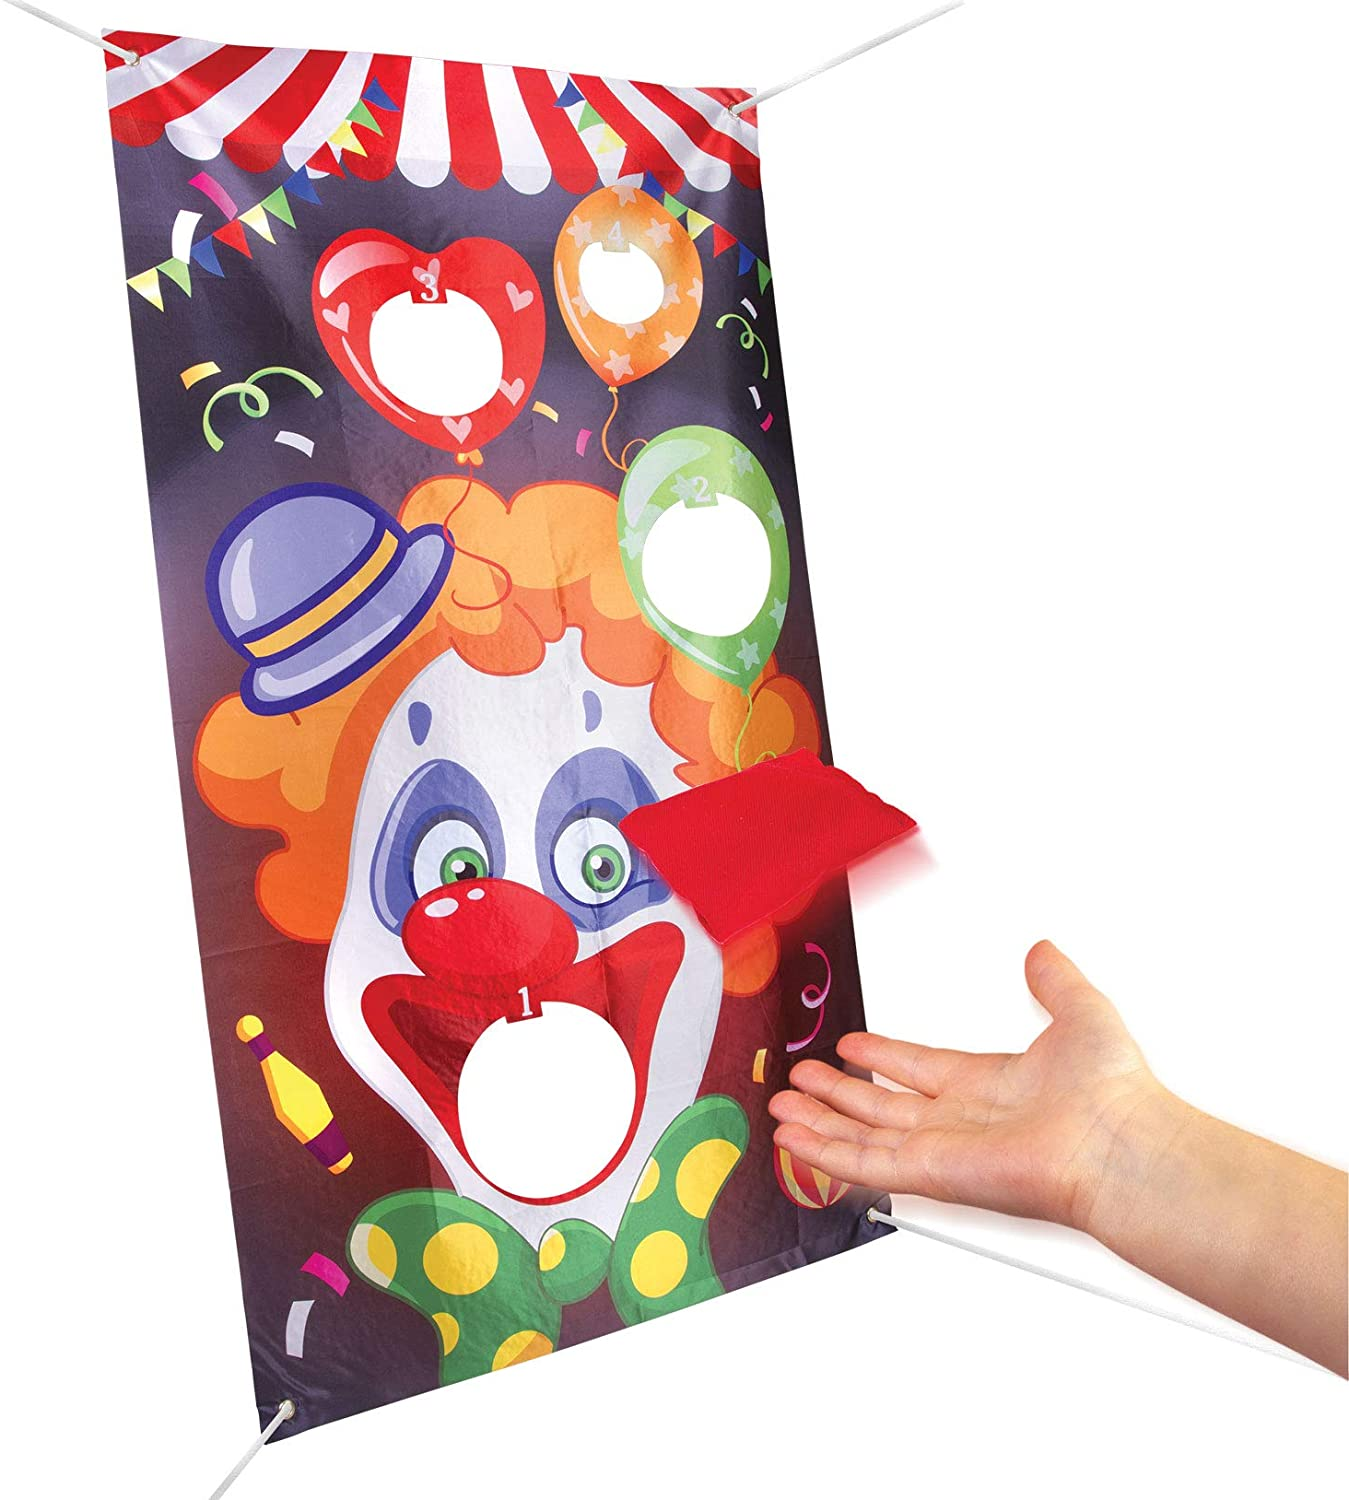 Indoor Outdoor Toss Game for Kids and Adults,Forest Throwing Game VegKey Bean Bag Toss Game with 3 Bean Bags Carnival Games Banner for Birthday Carnival Christmas Party Decoration